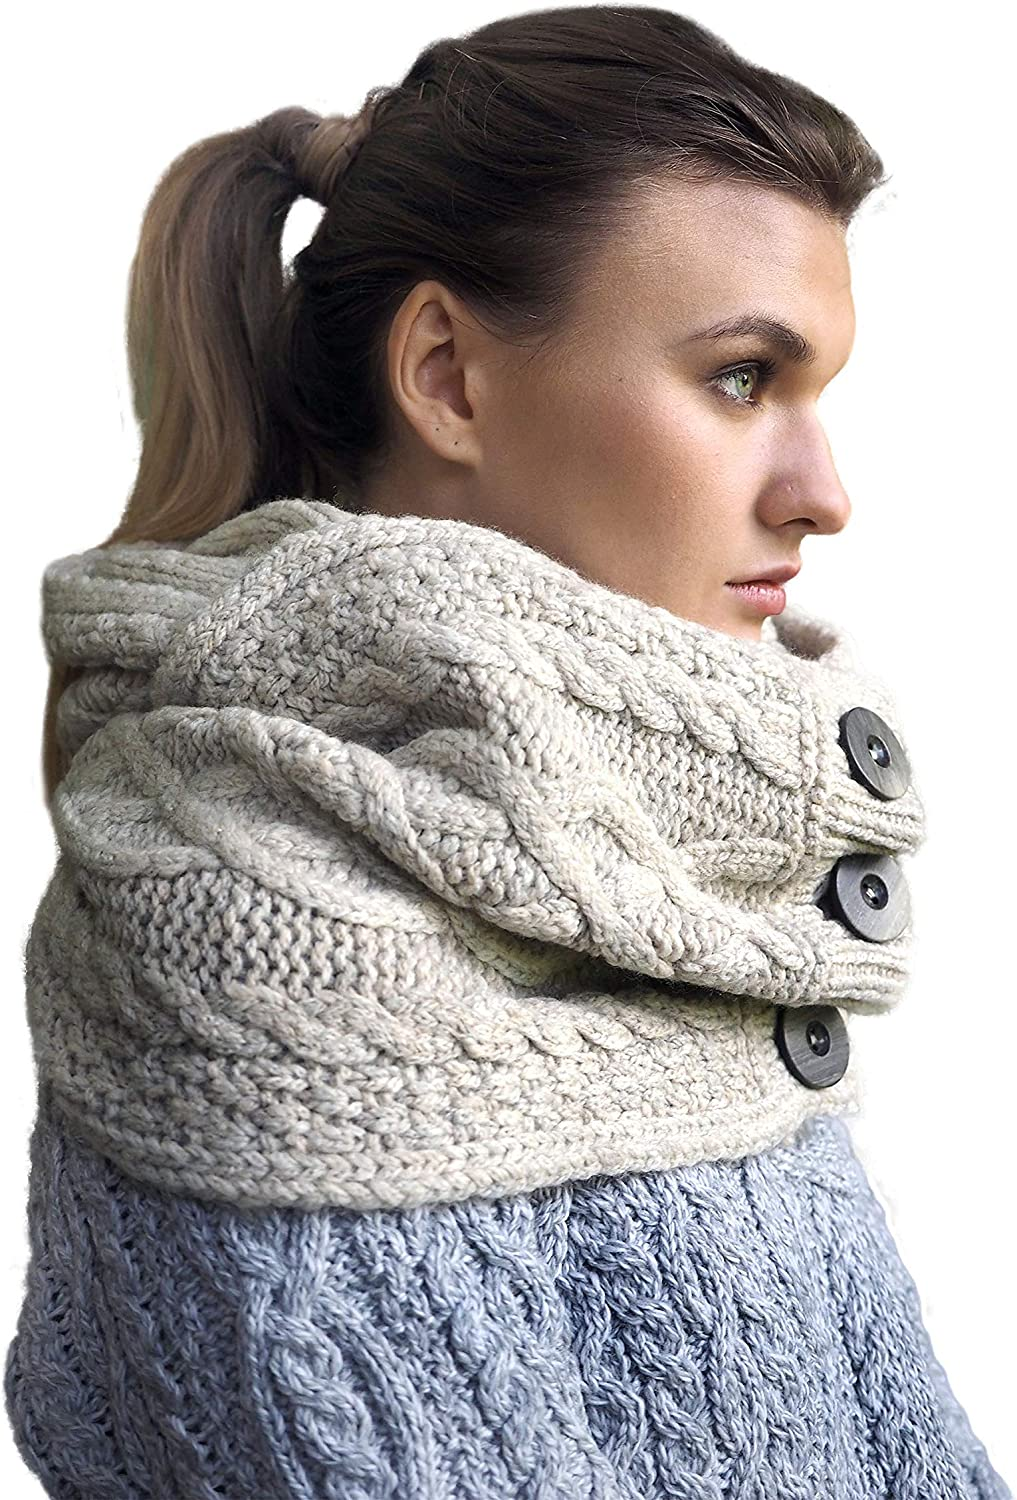 100% Merino Wool Super Soft Irish Snood Scarf